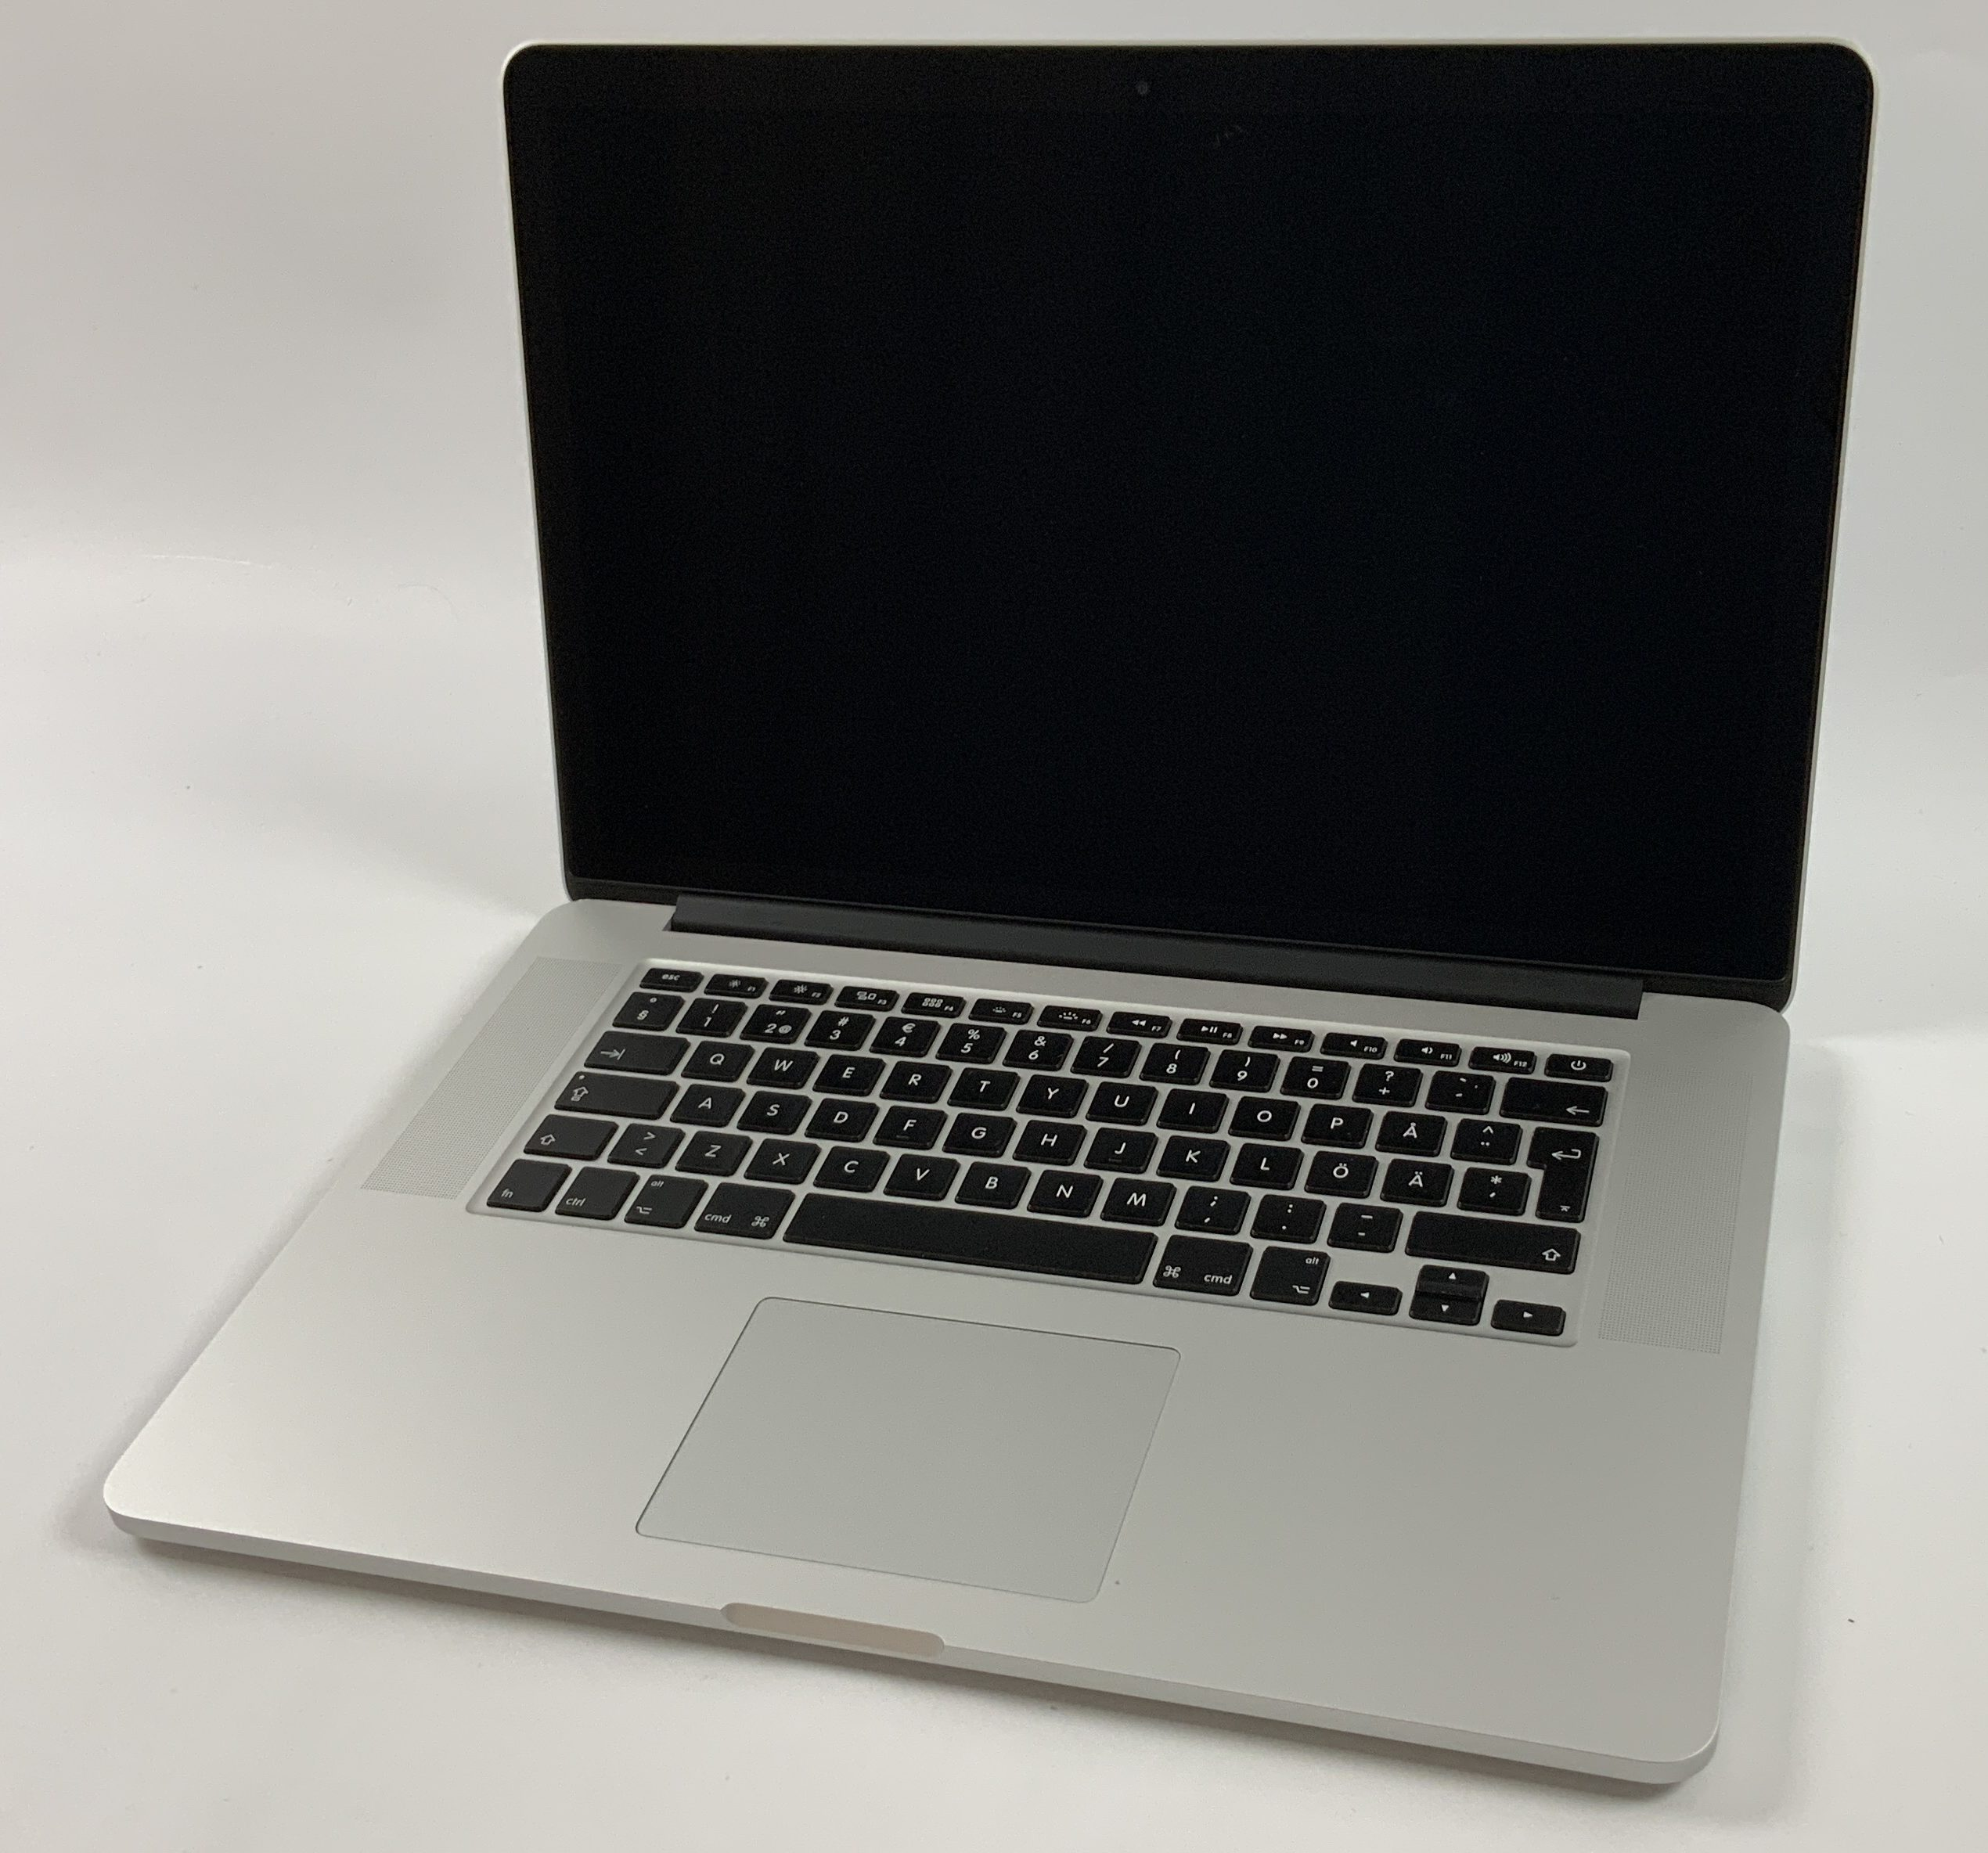 "MacBook Pro Retina 15"" Late 2013 (Intel Quad-Core i7 2.0 GHz 8 GB RAM 256 GB SSD), Intel Quad-Core i7 2.0 GHz, 8 GB RAM, 256 GB SSD, Kuva 1"